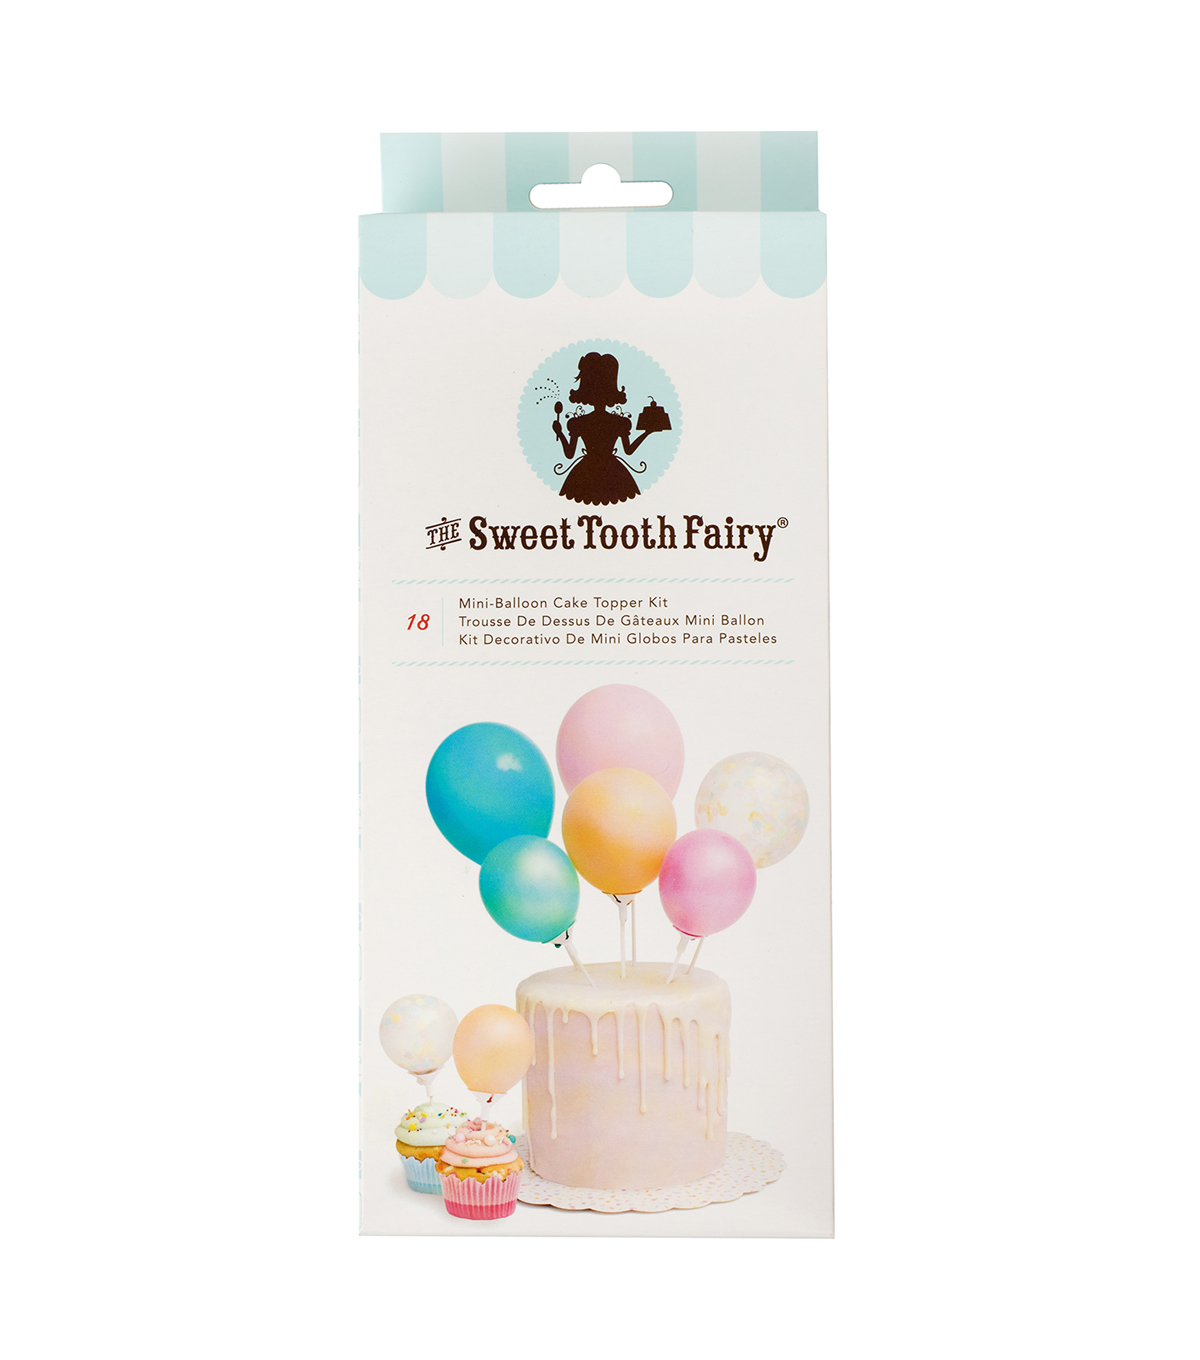 The Sweet Tooth Fairy 18 pk Mini-Balloon Cake Topper Kit-Color